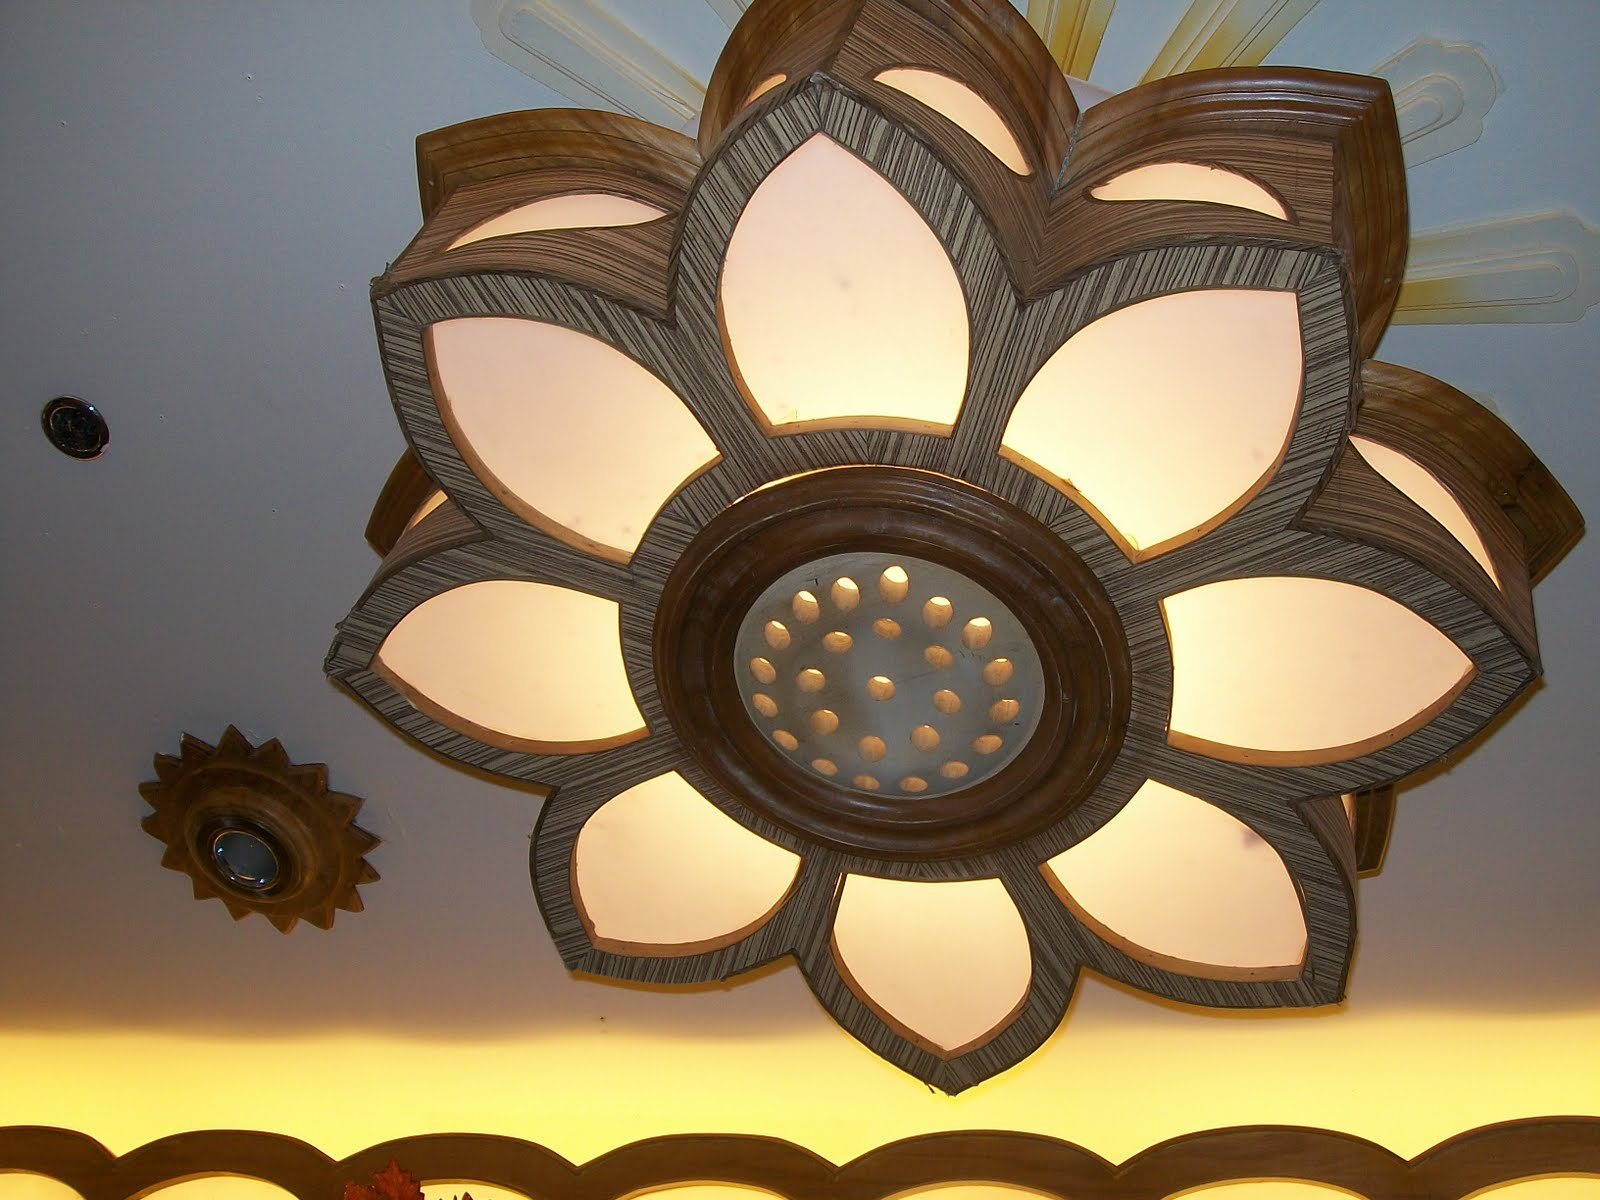 Shaped Eclectic Sunflower Ceiling Fixtures From Lamps To Pin Lights